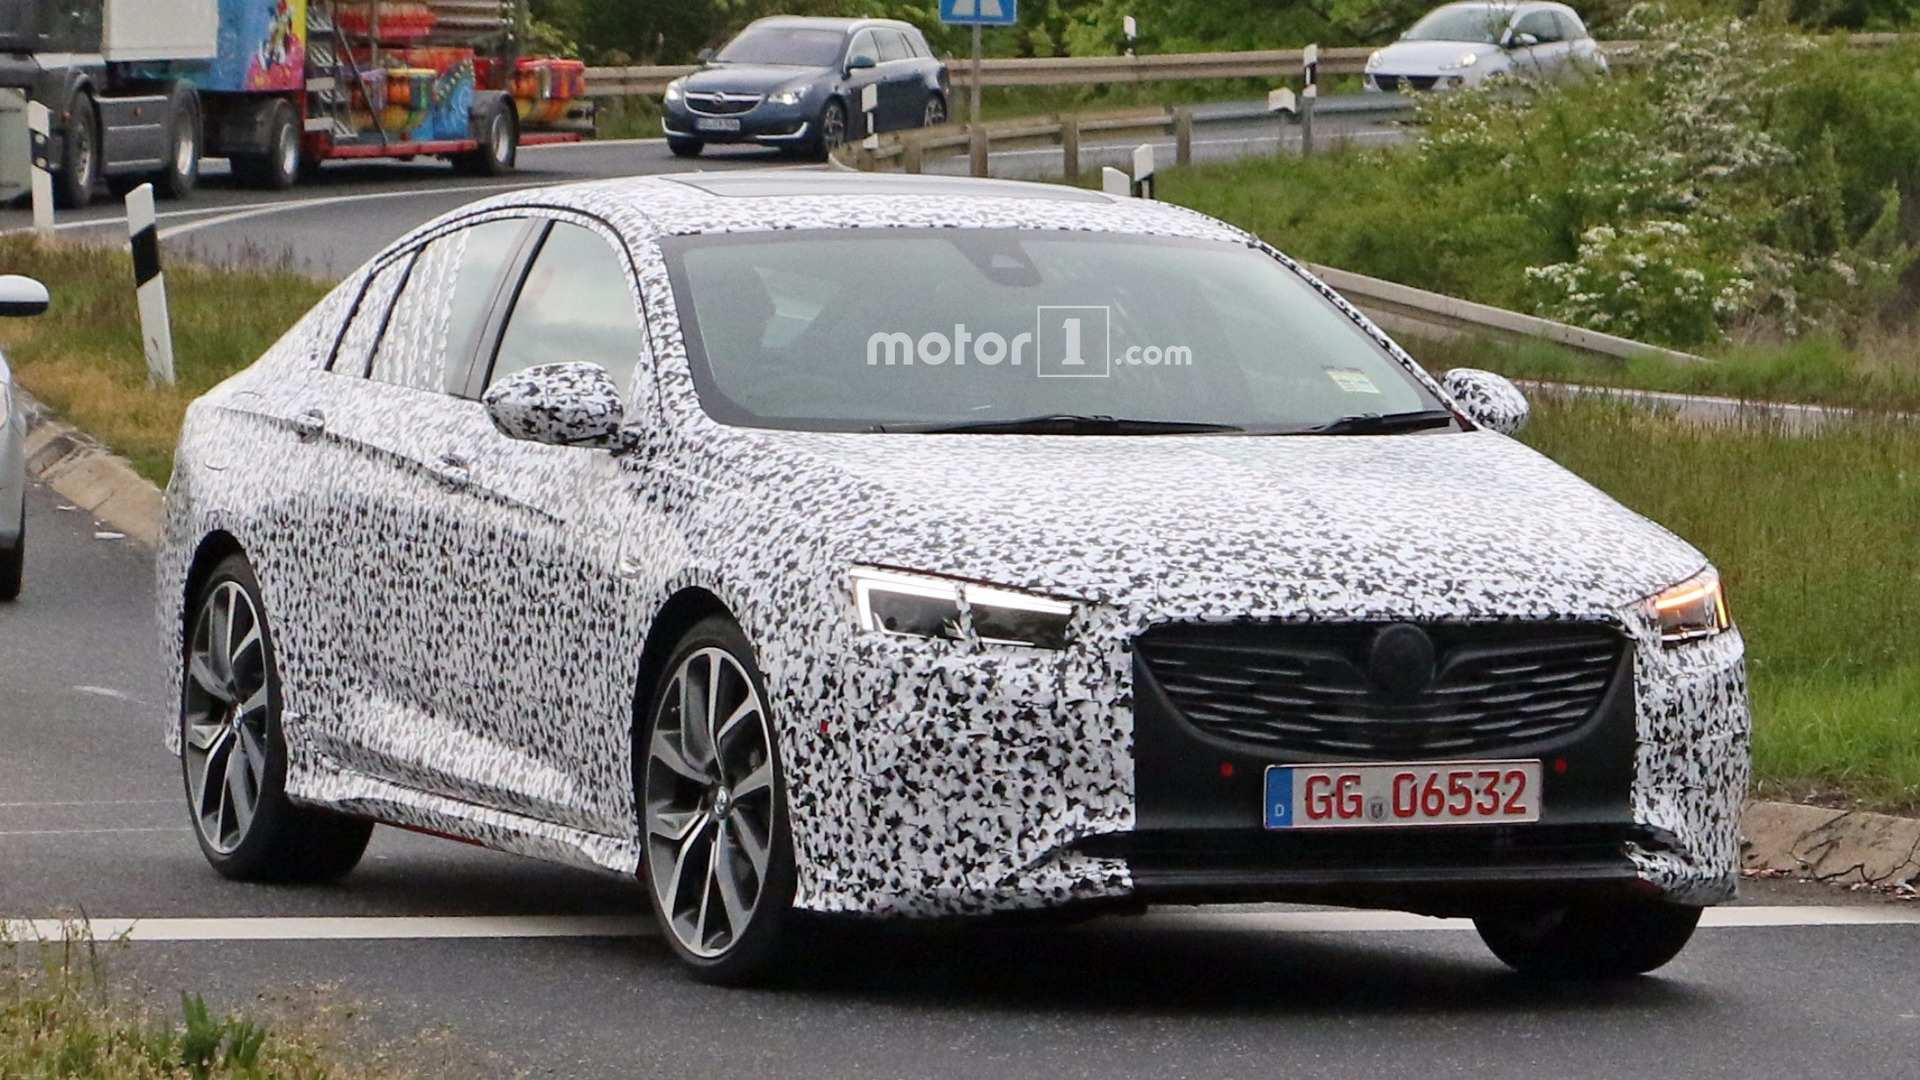 38 All New Opel Insignia Opc 2020 Price by Opel Insignia Opc 2020